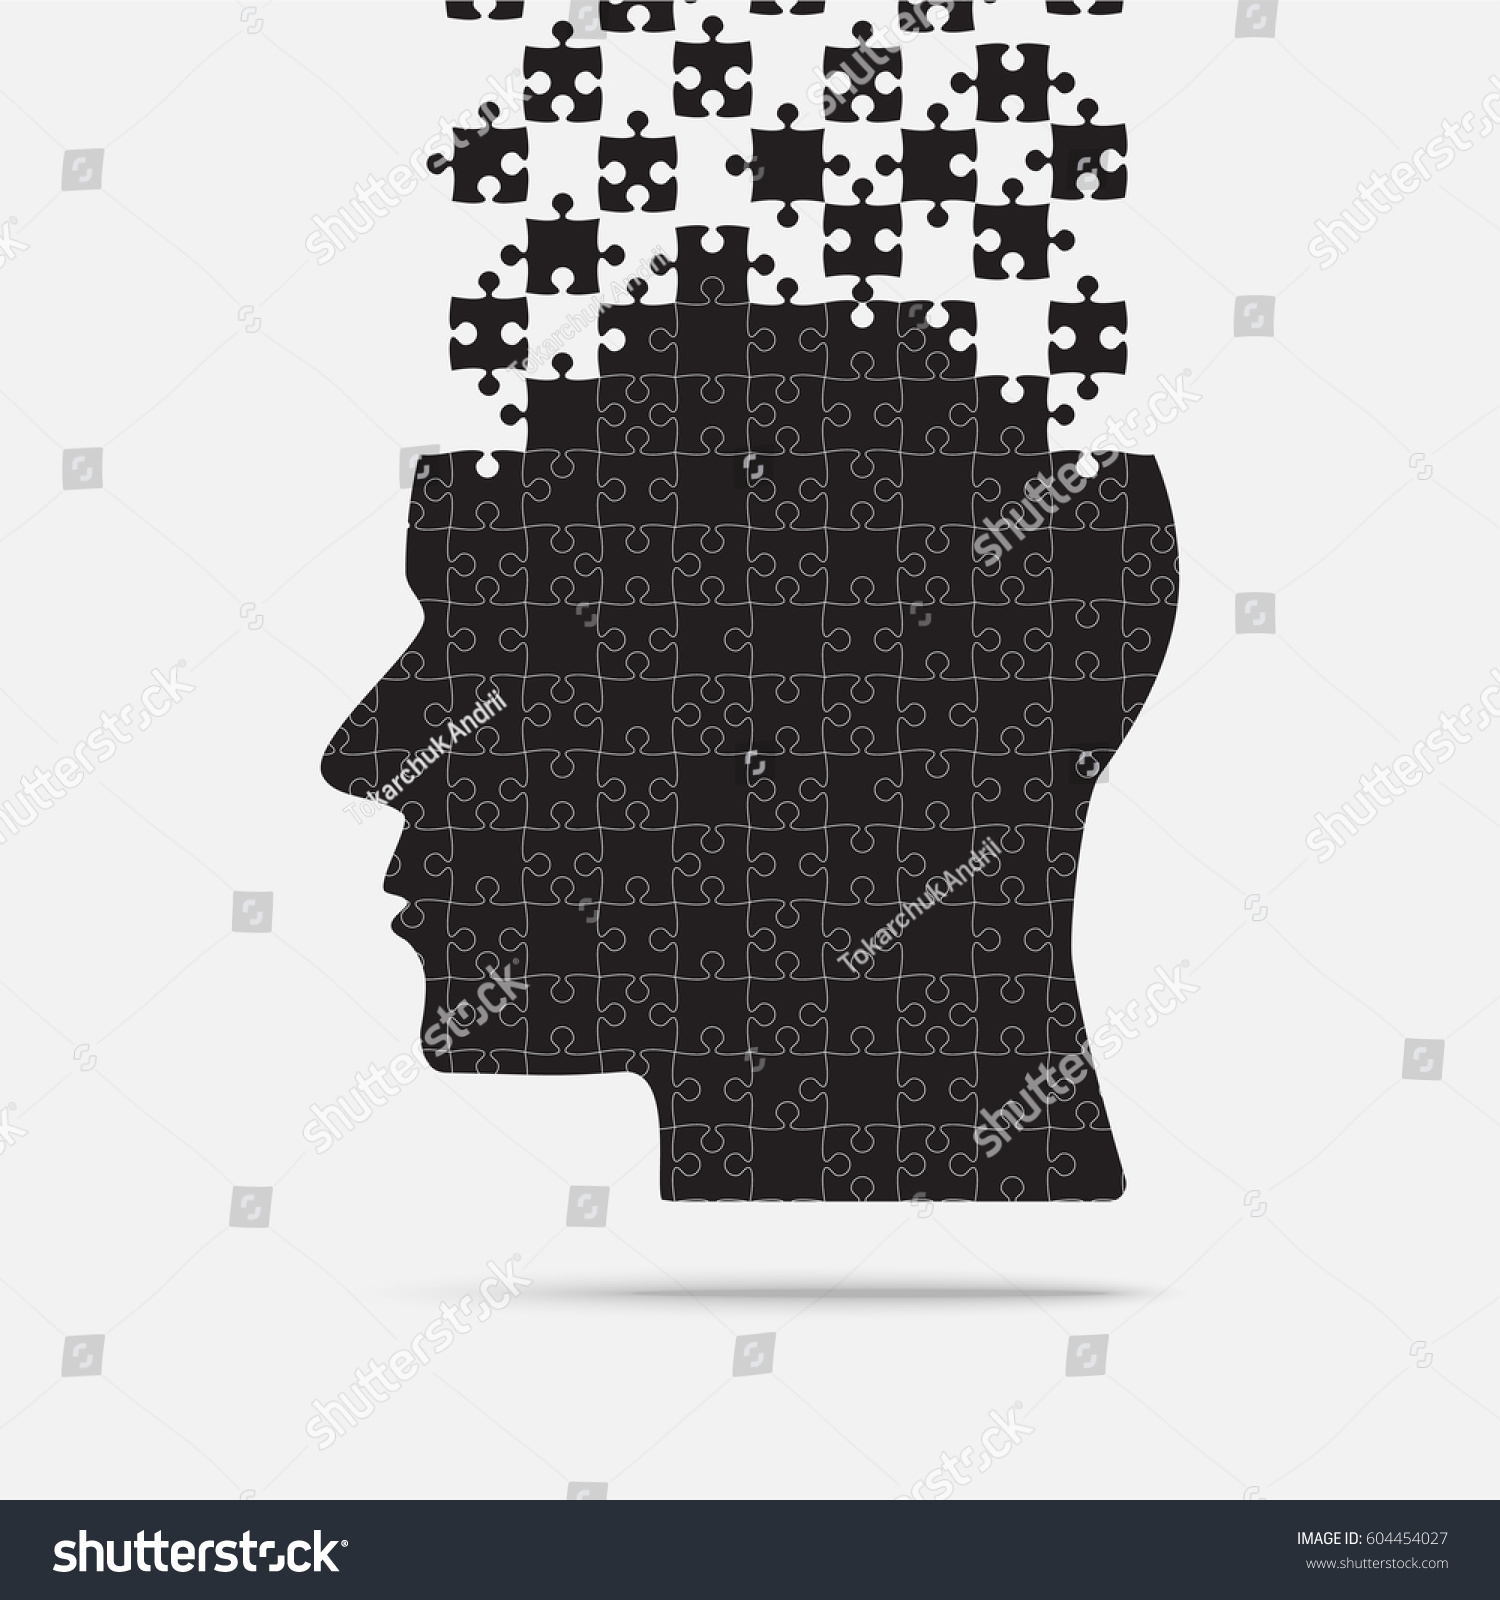 Black Puzzle Piece Silhouette Head Grey Stock Vector 604454027 ...